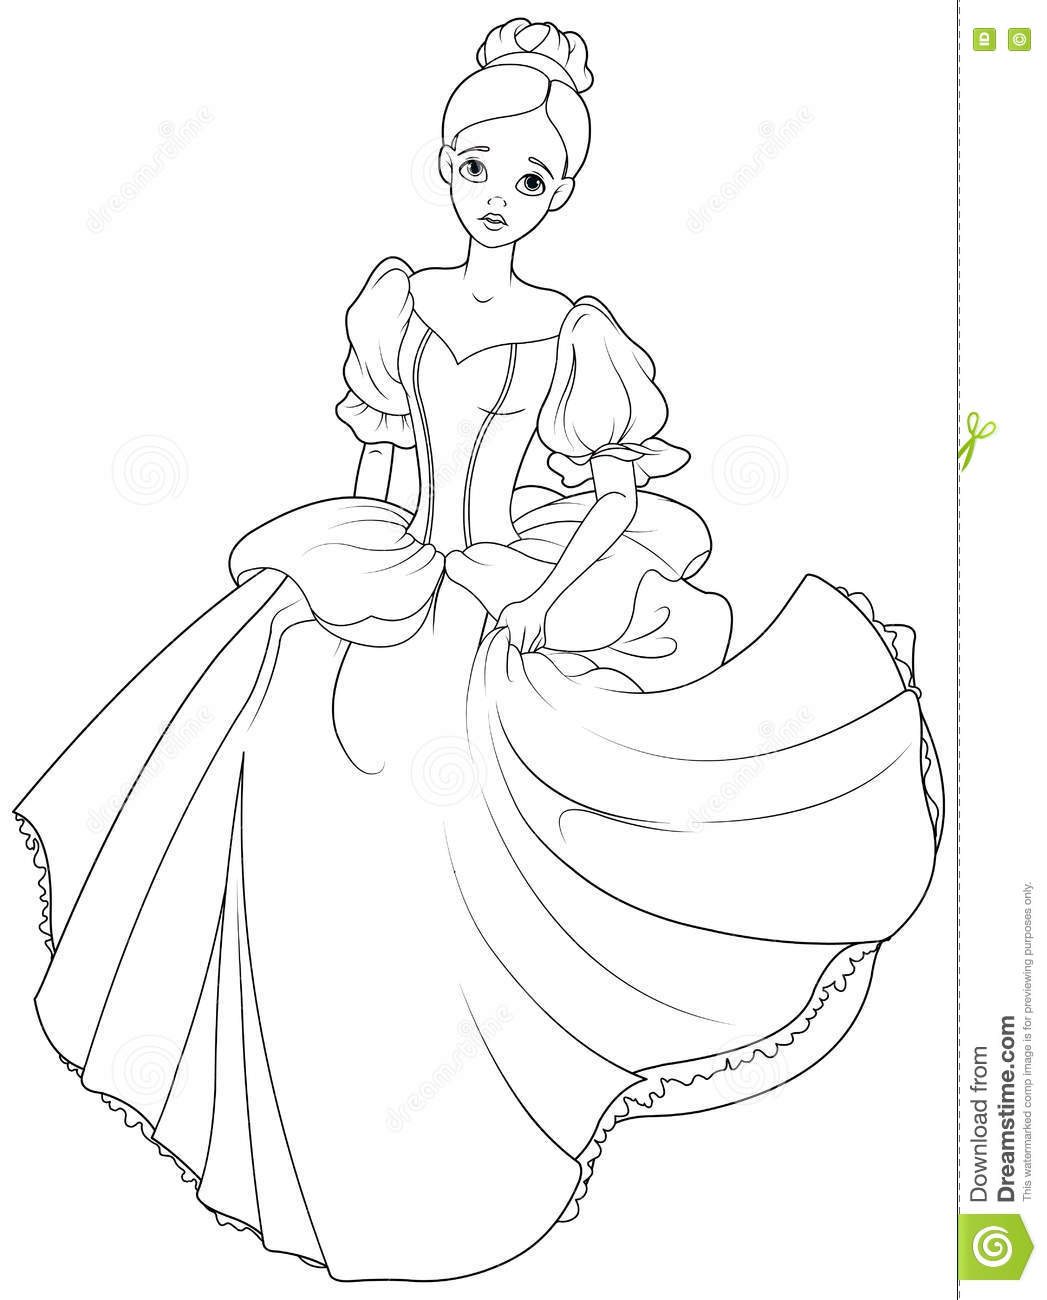 Running Cinderella Coloring Page Stock Vector - Illustration of ...